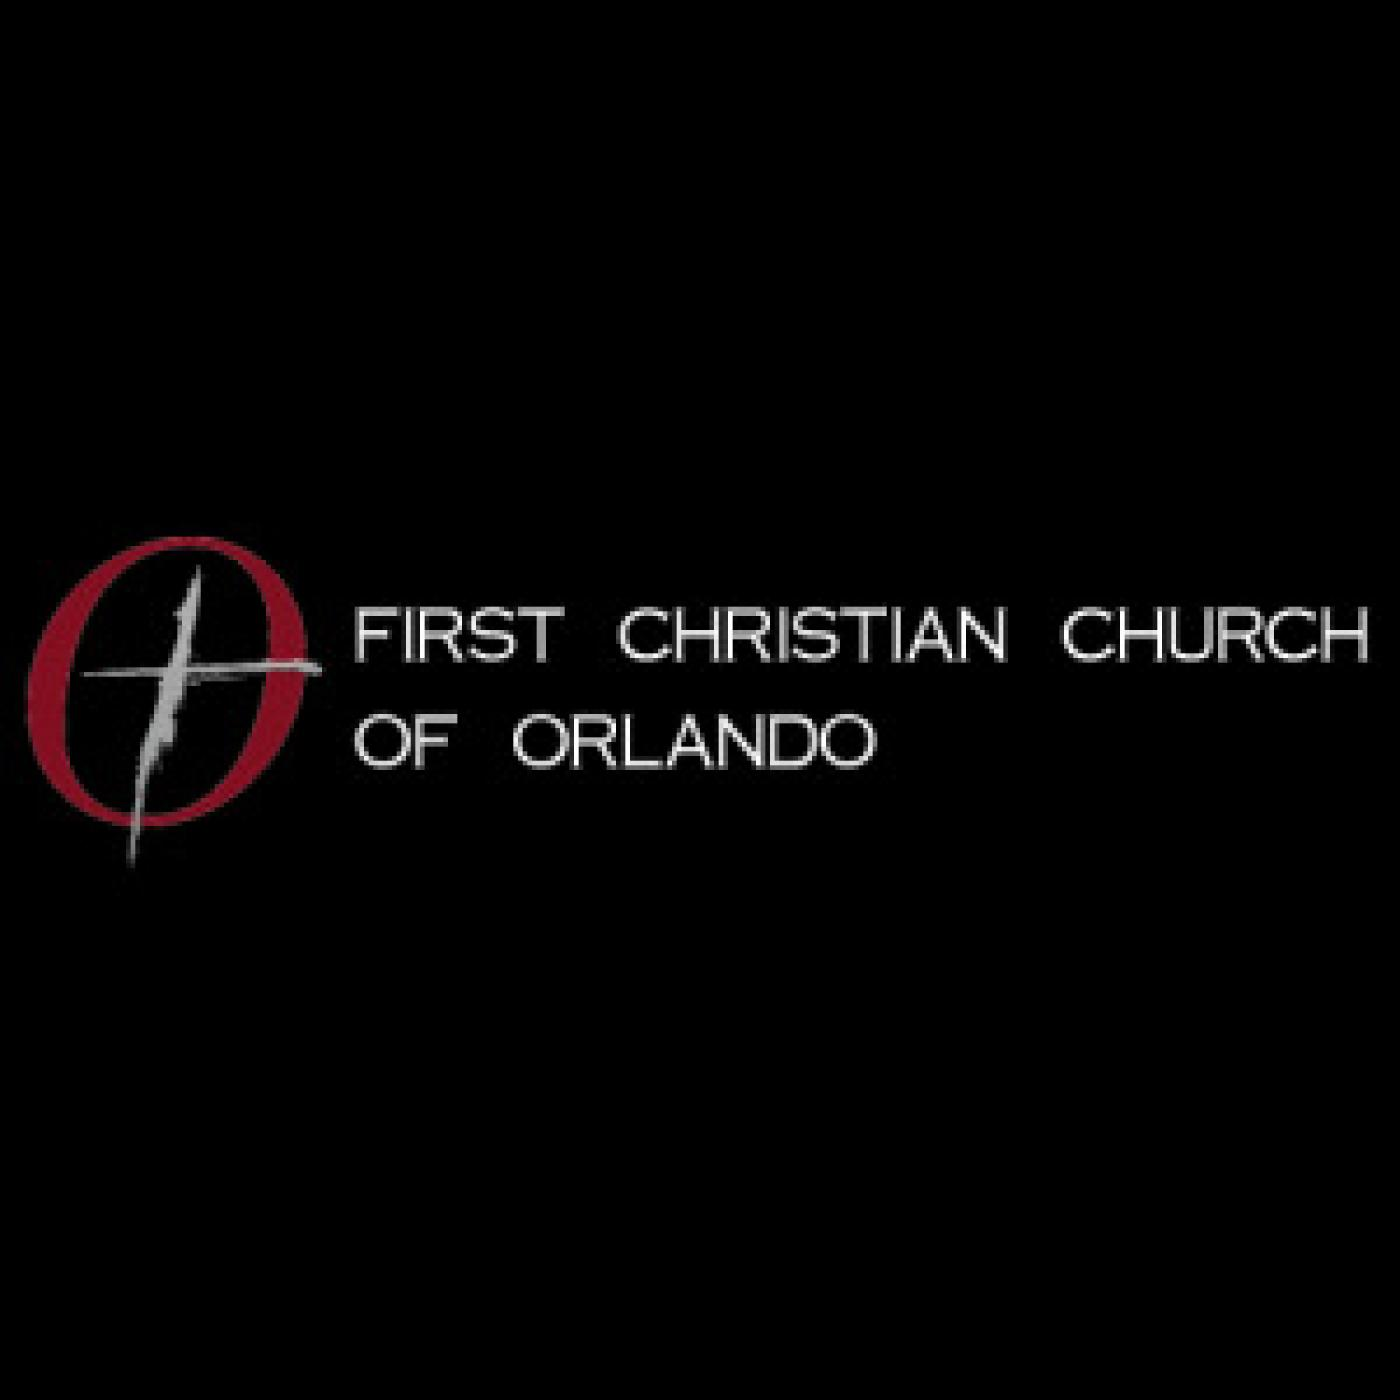 First Christian Church of Orlando